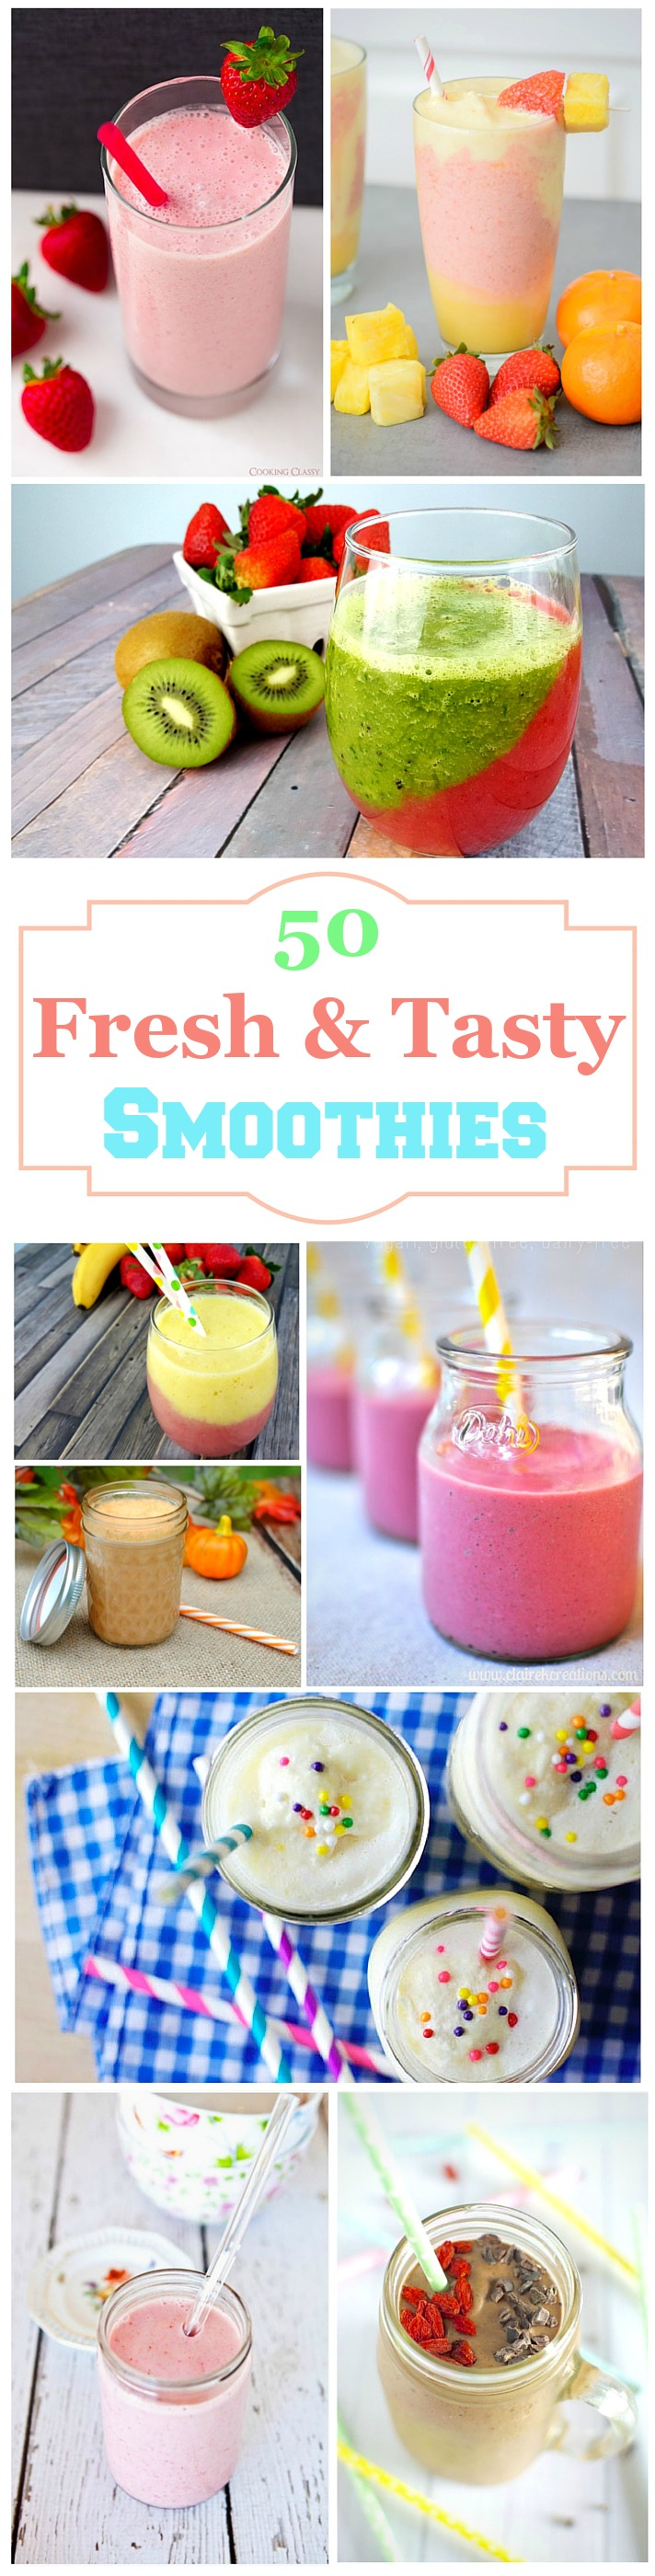 50 Fresh and Tasty Smoothies